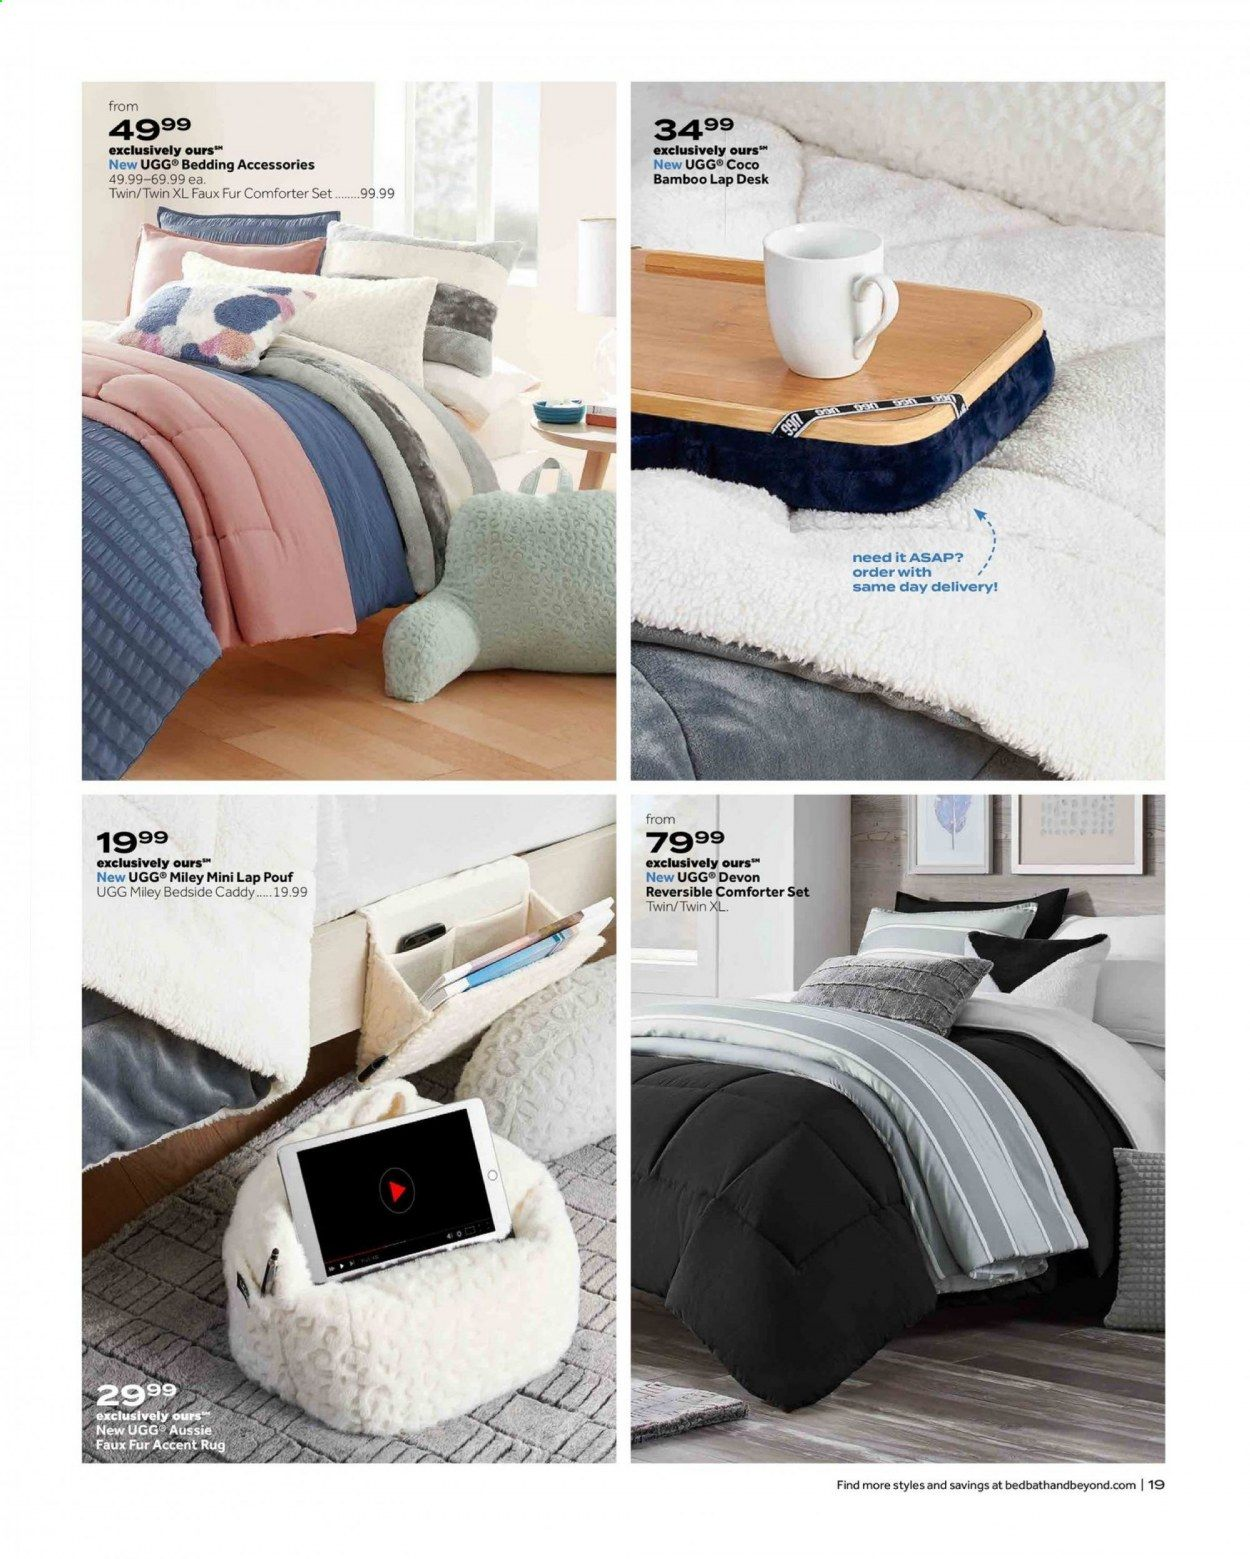 Bed Bath & Beyond Ad from july 12 to 25 2021 - Page 19